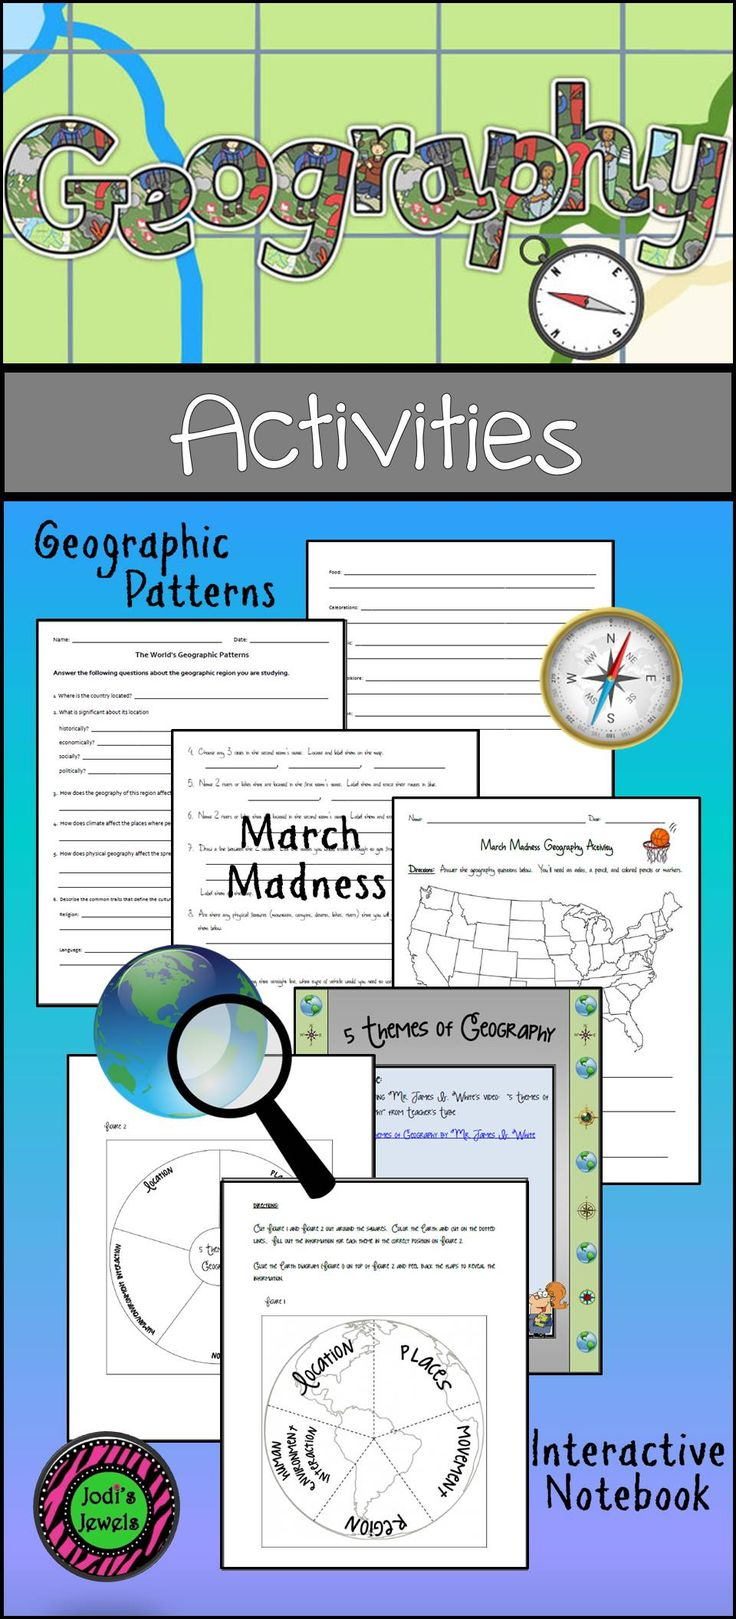 Visit Jodi's Jewels for geography activities that include maps, worksheets, geographic patterns, and interactive notebook activities. Created with middle school in mind.